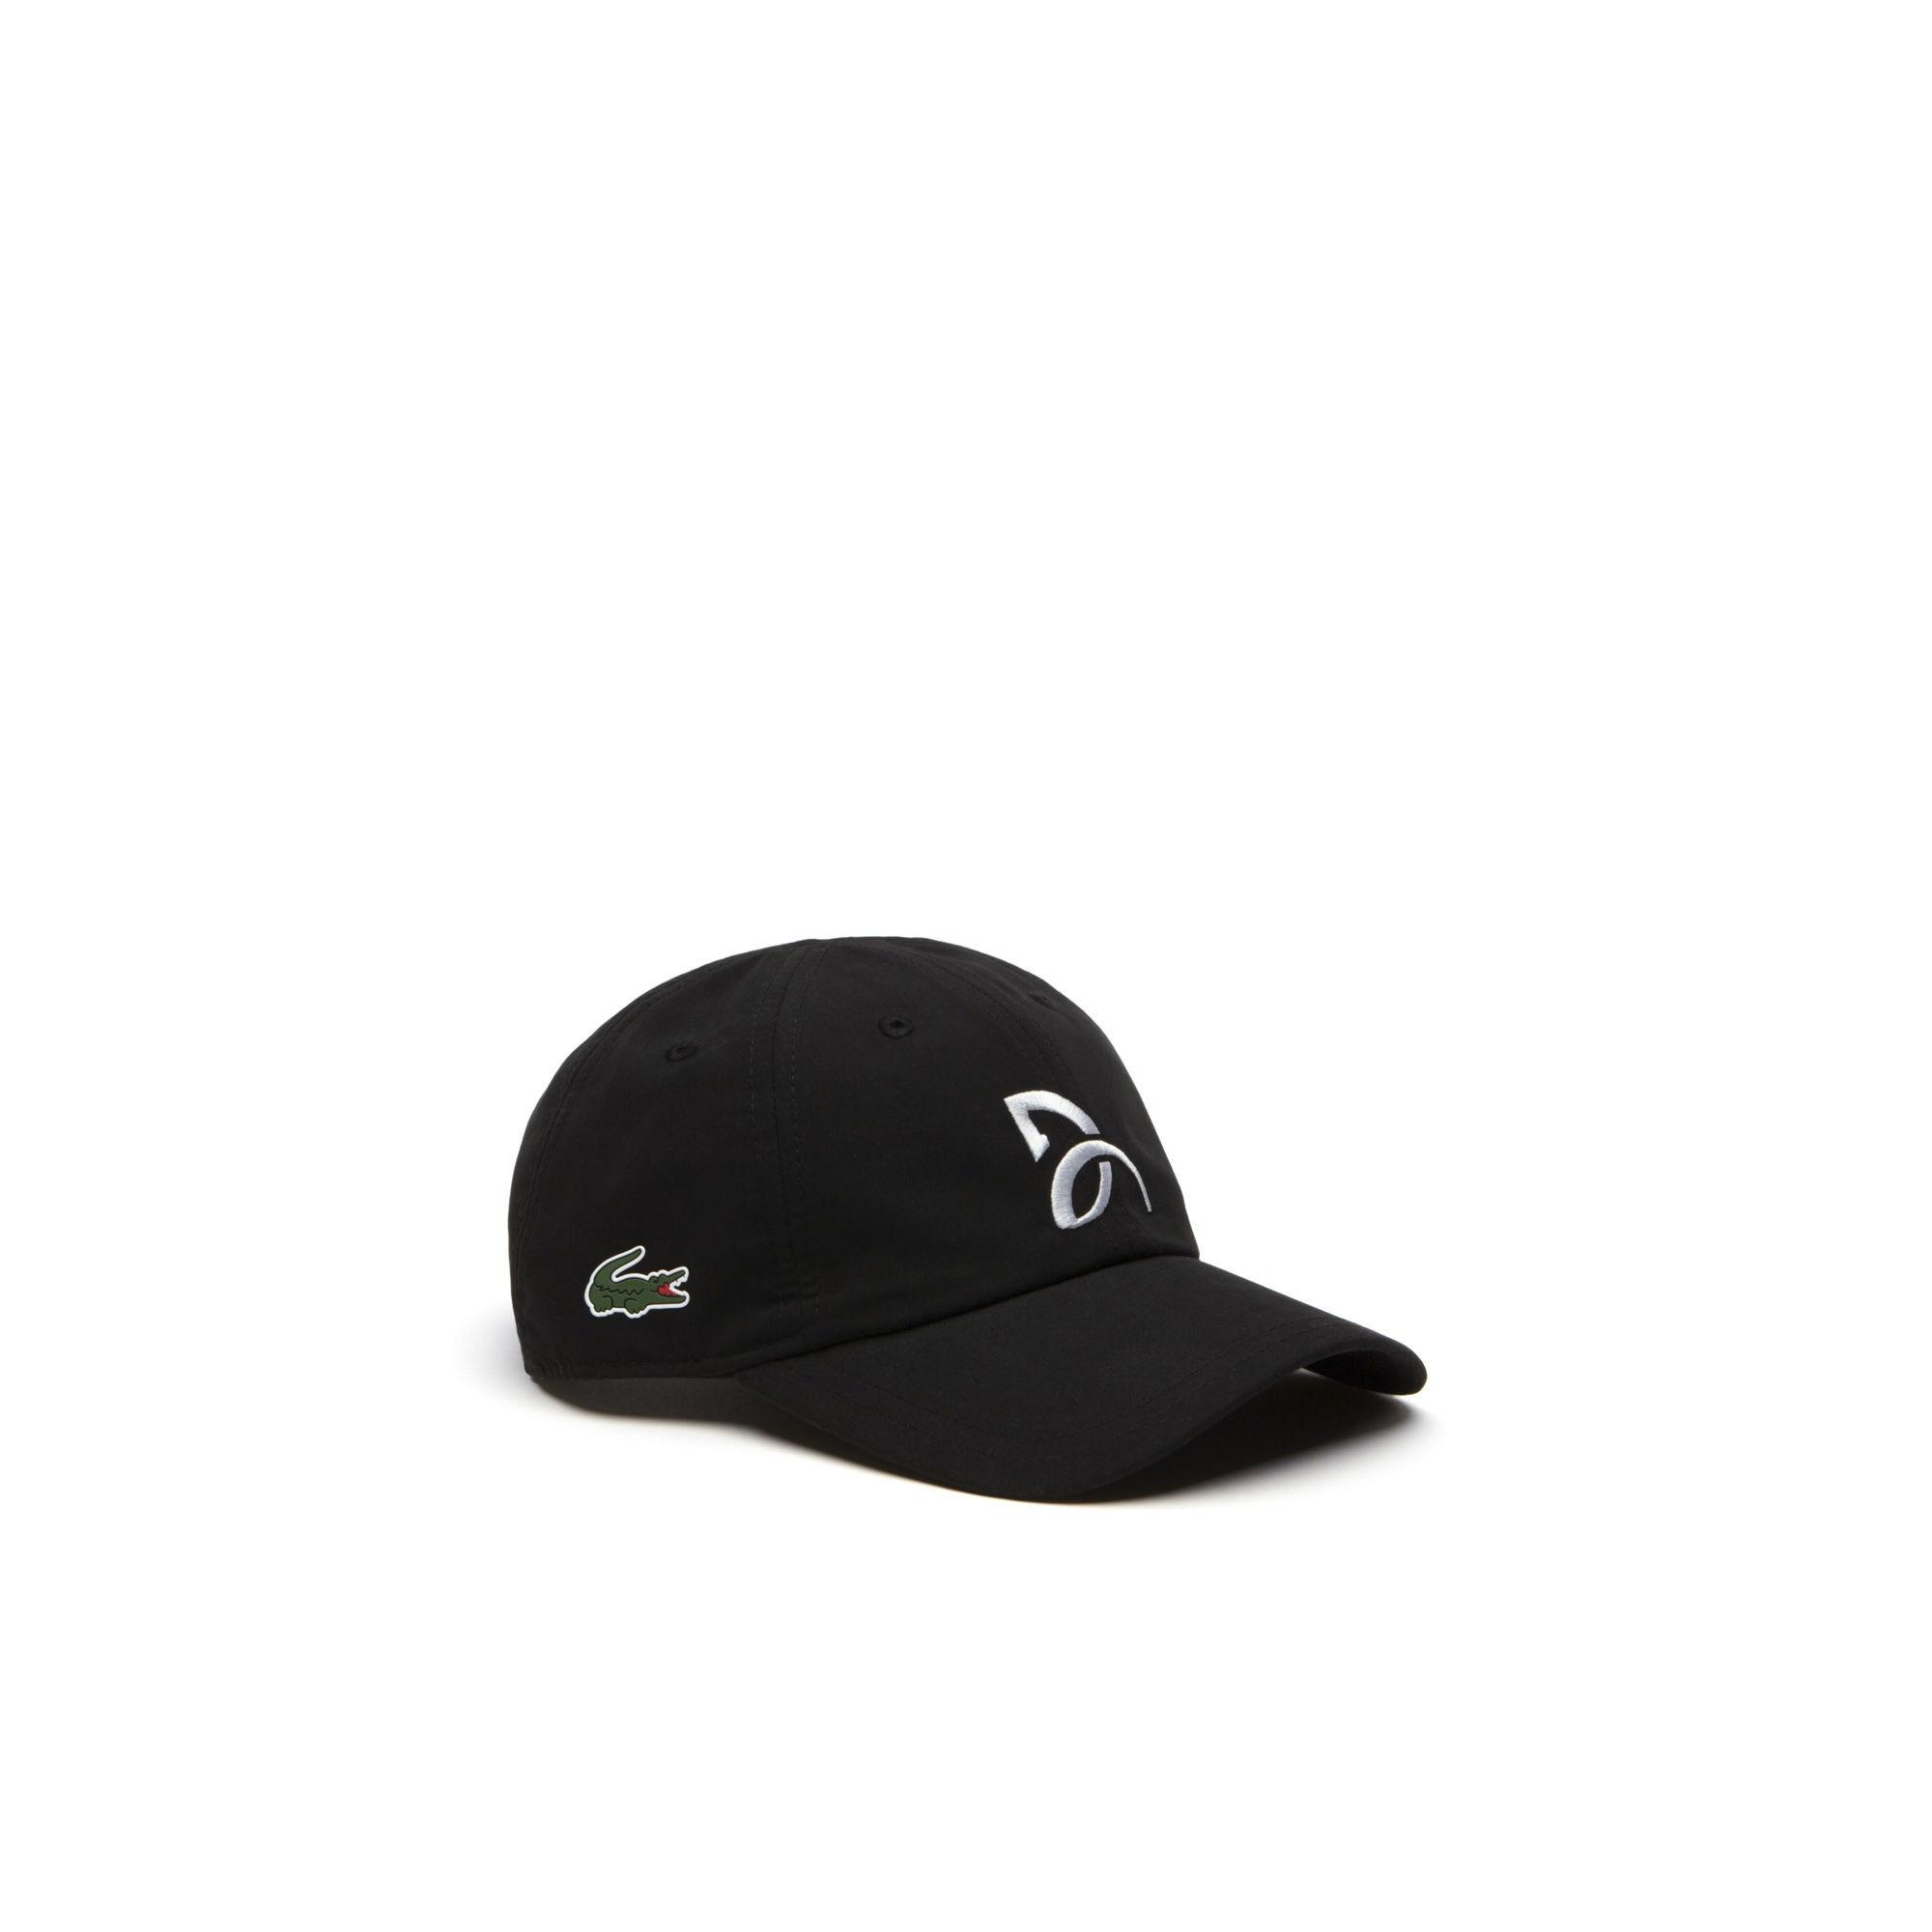 951ea97db3a81 Lyst - Lacoste Sport Tennis Microfiber Cap - Support With Style ...